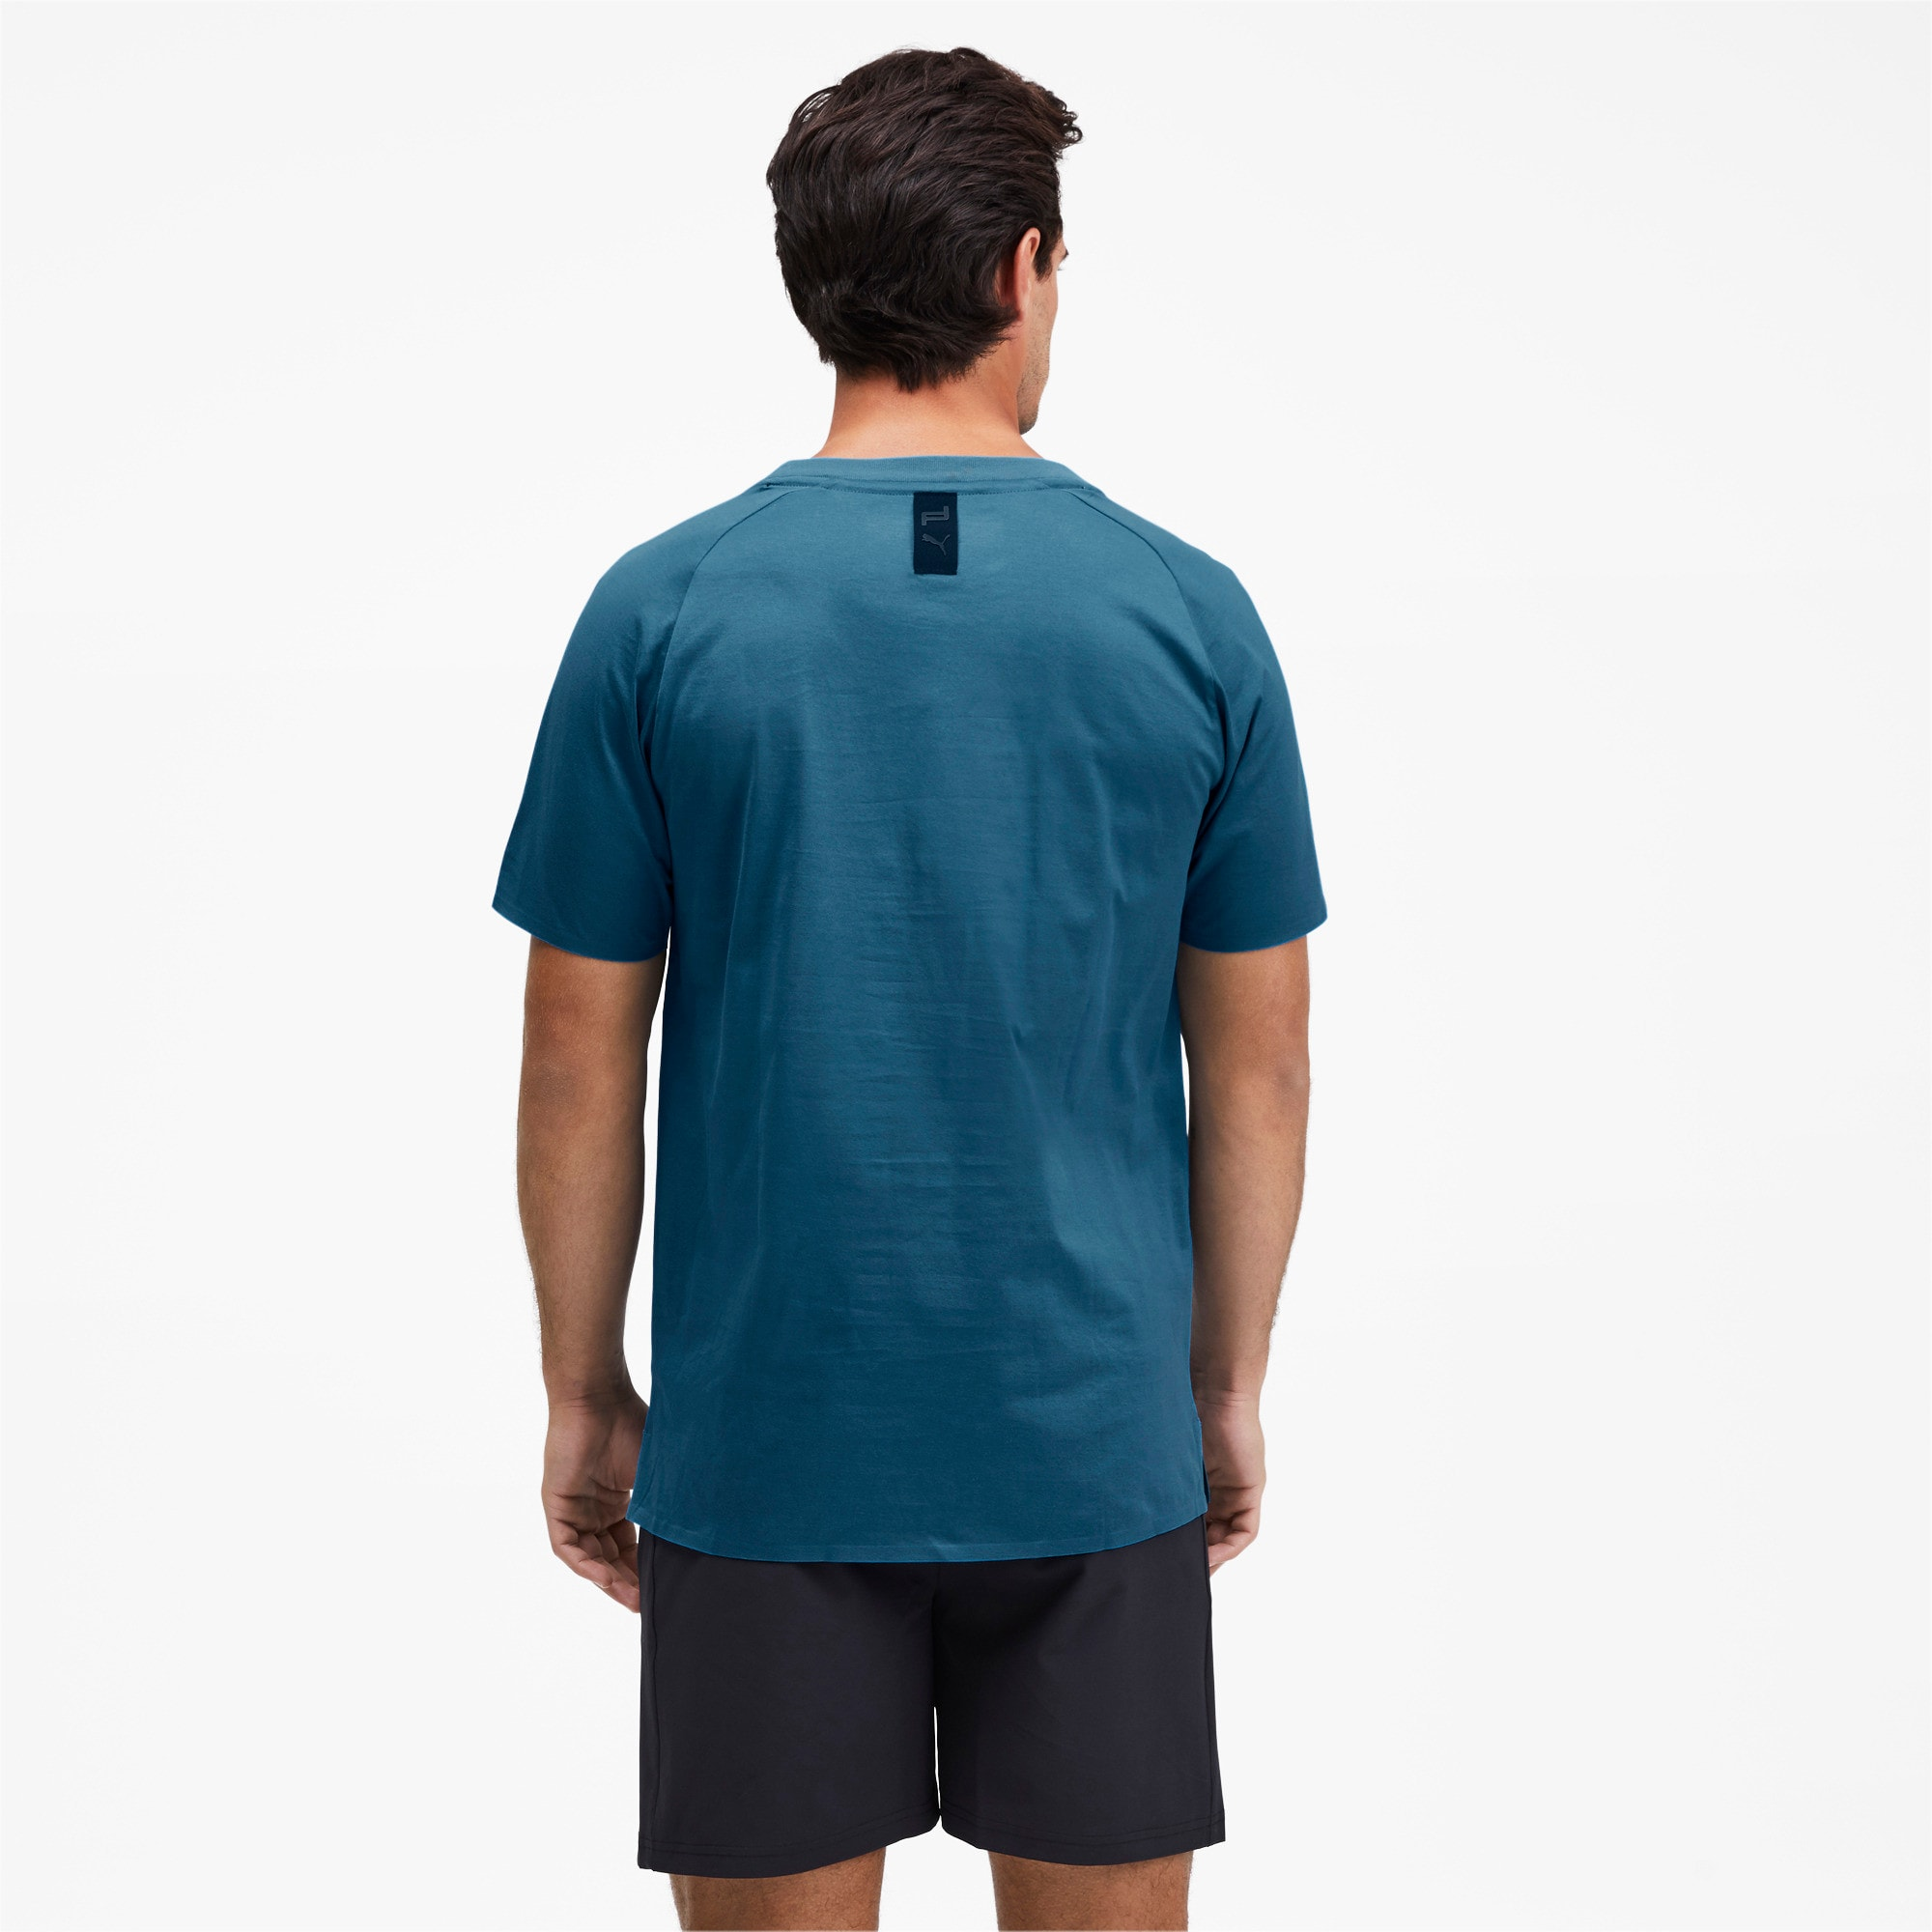 Thumbnail 2 of Porsche Design Men's Essential Tee, Moroccan Blue, medium